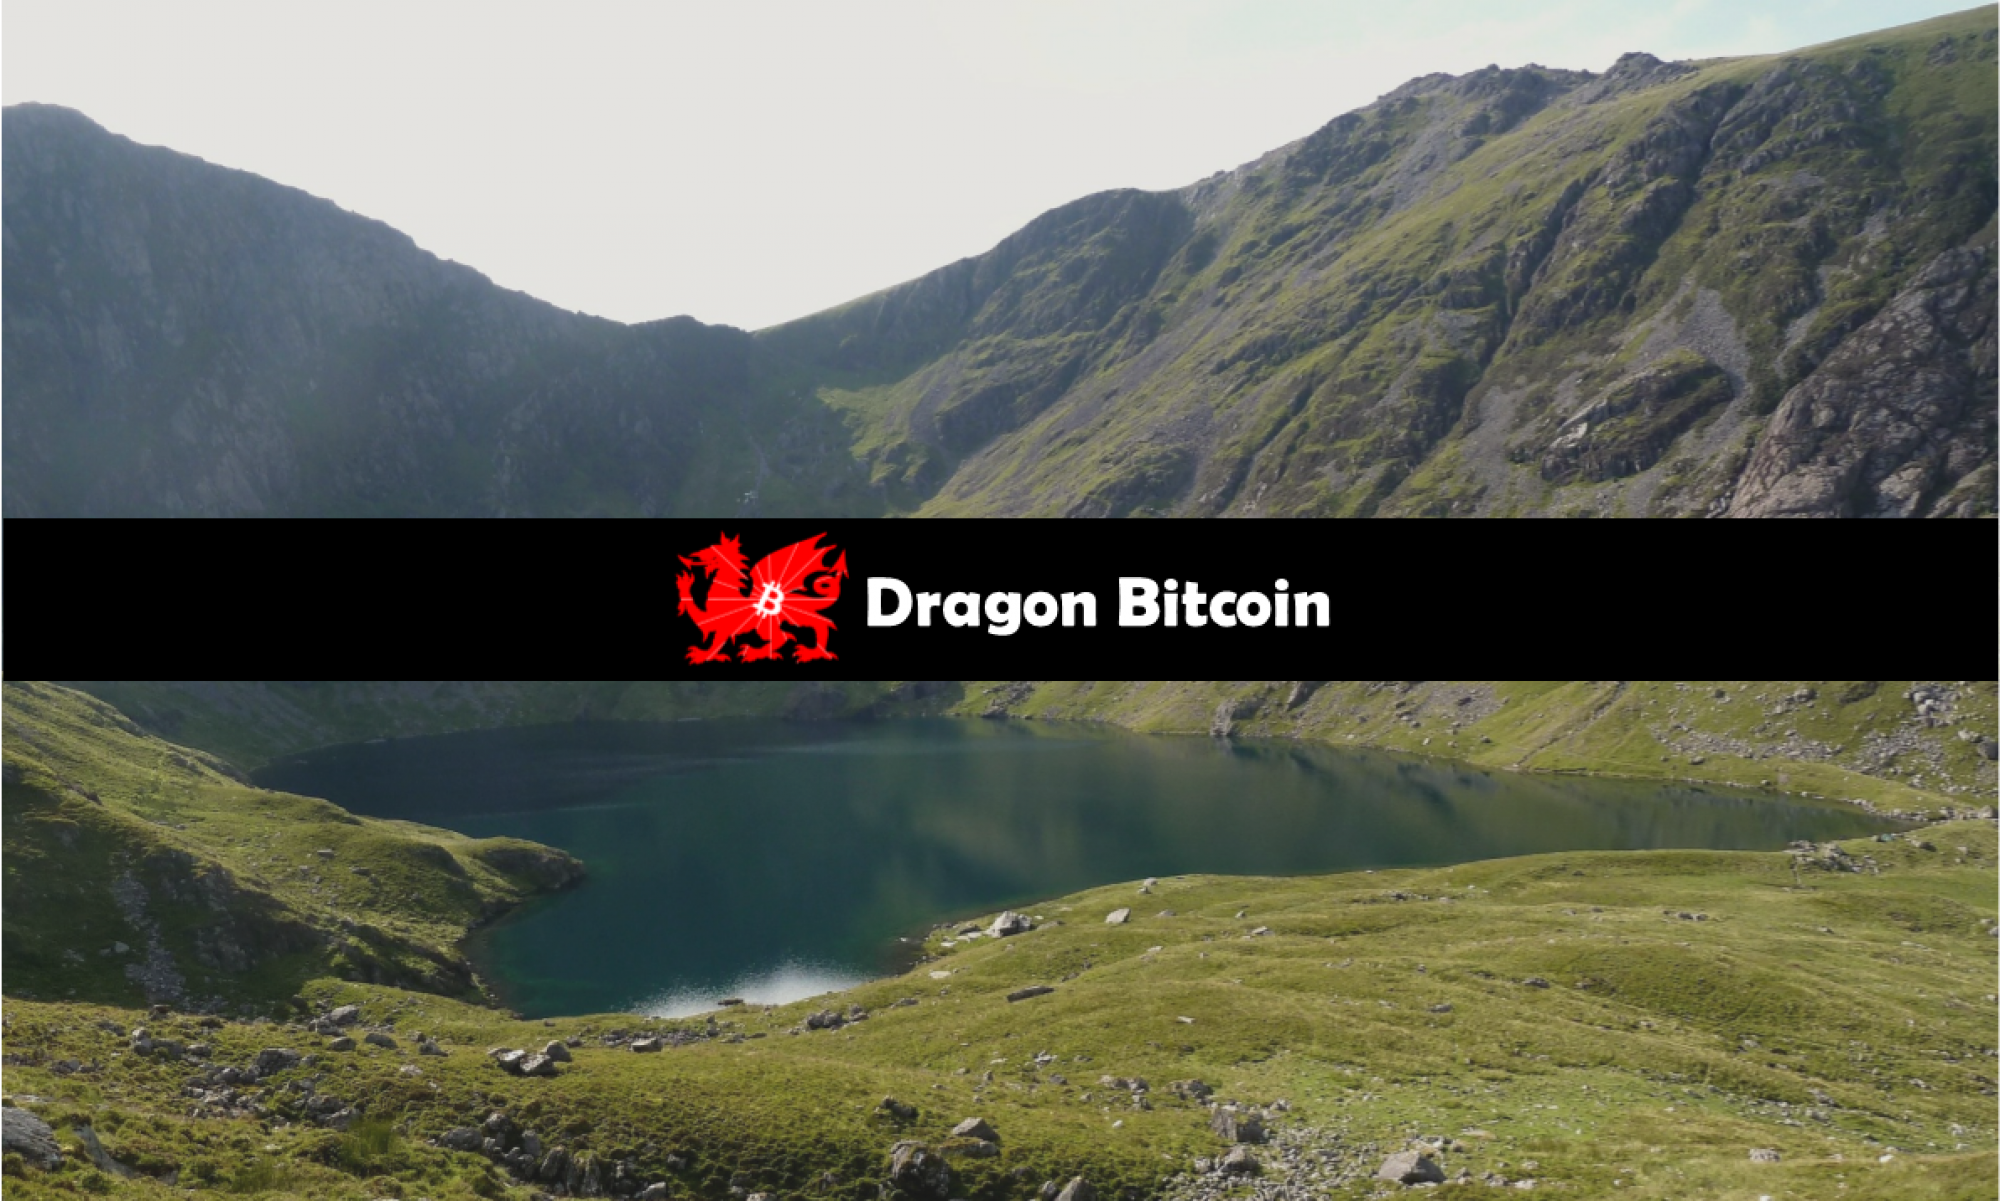 Dragon Bitcoin